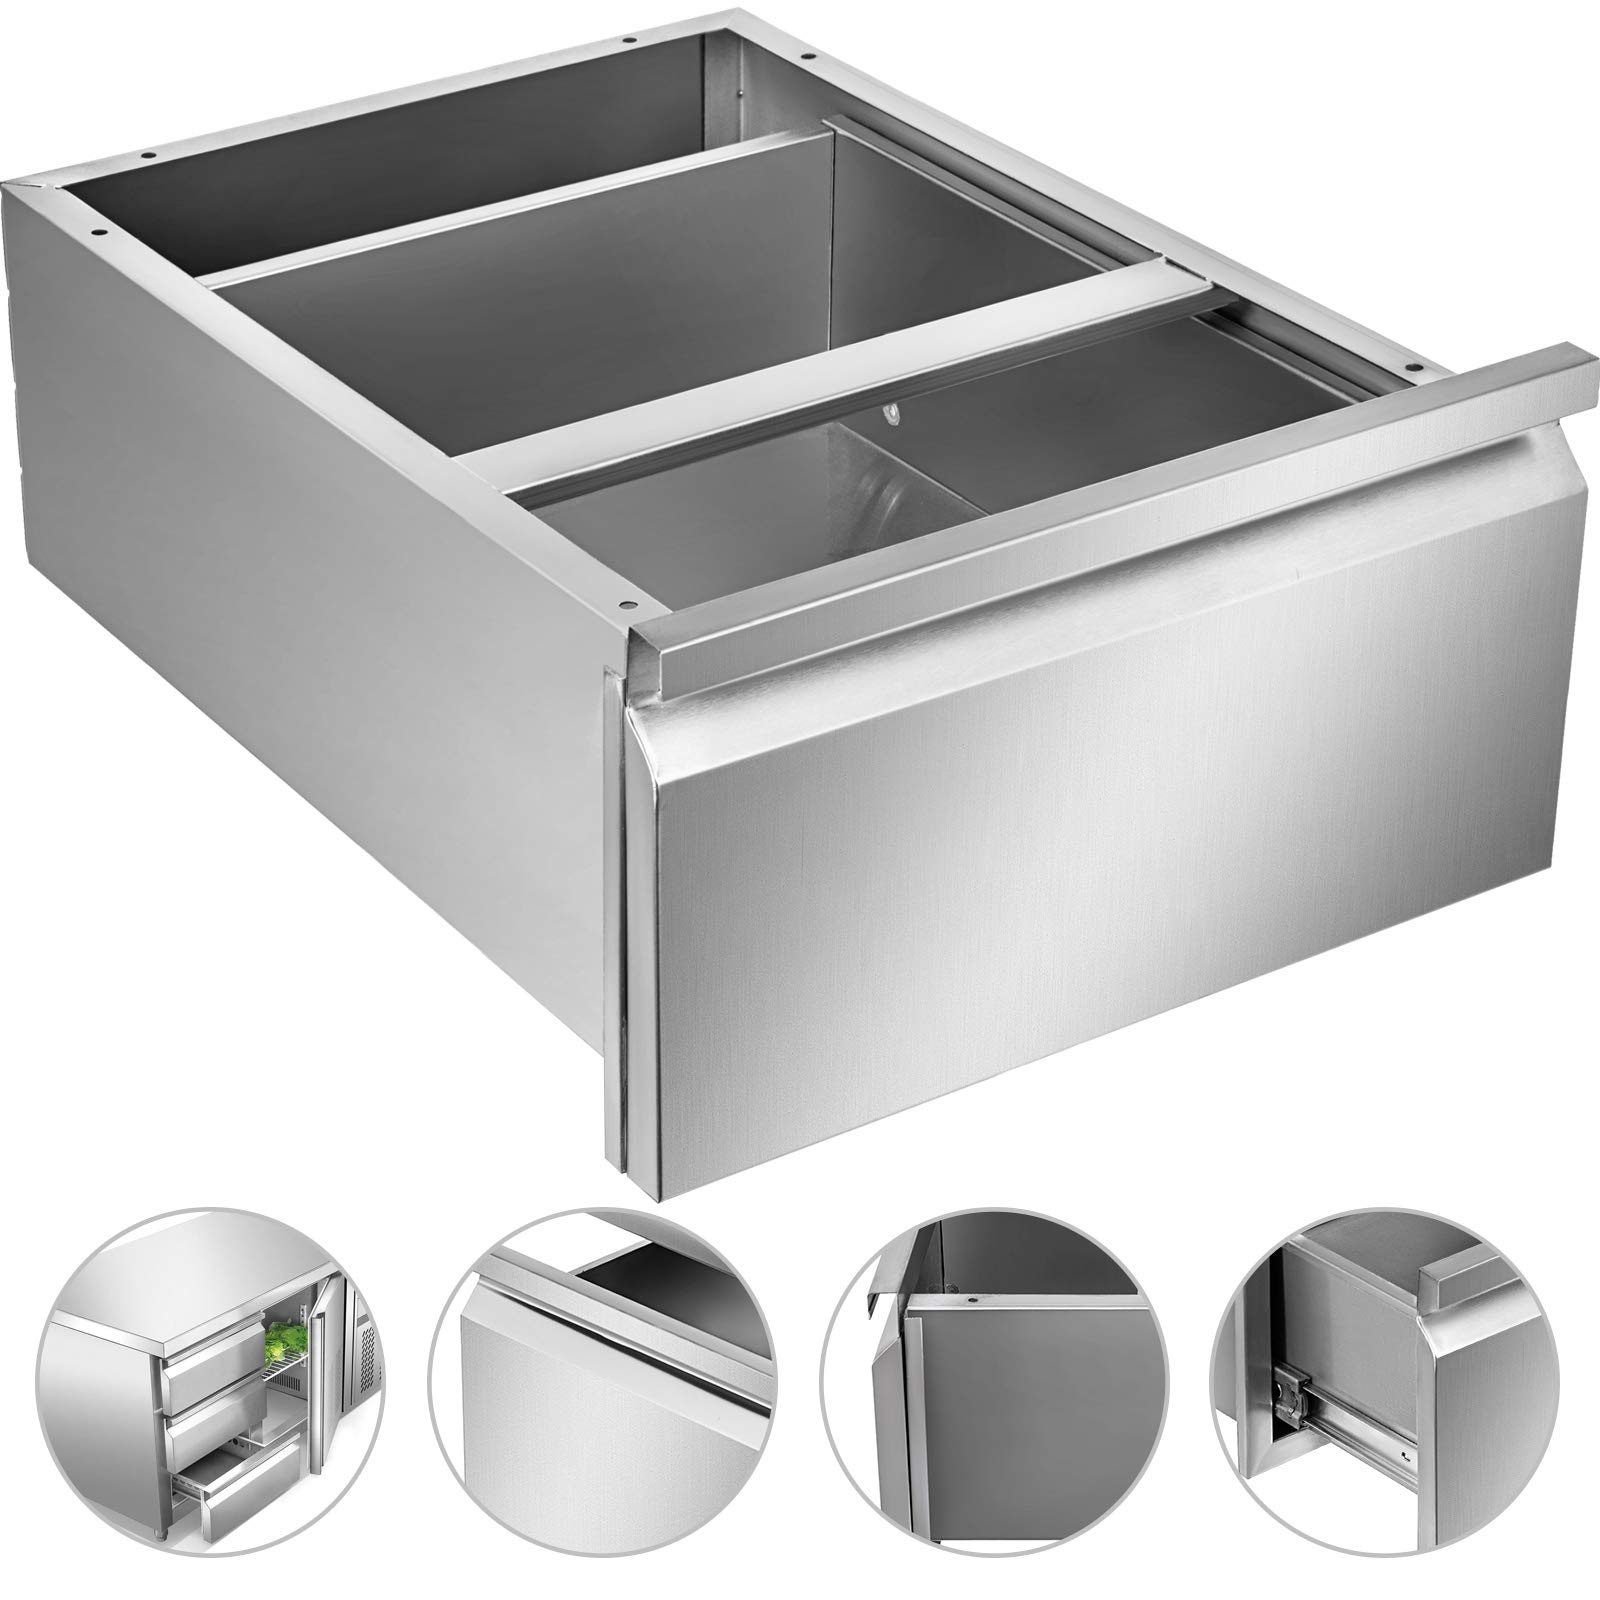 Mophorn Outdoor Kitchen Drawer Stainless Steel BBQ Storage with Chrome Handle Flush Mount Sliver (14.7 x20 x8 Inch, Single Worktable Drawer)